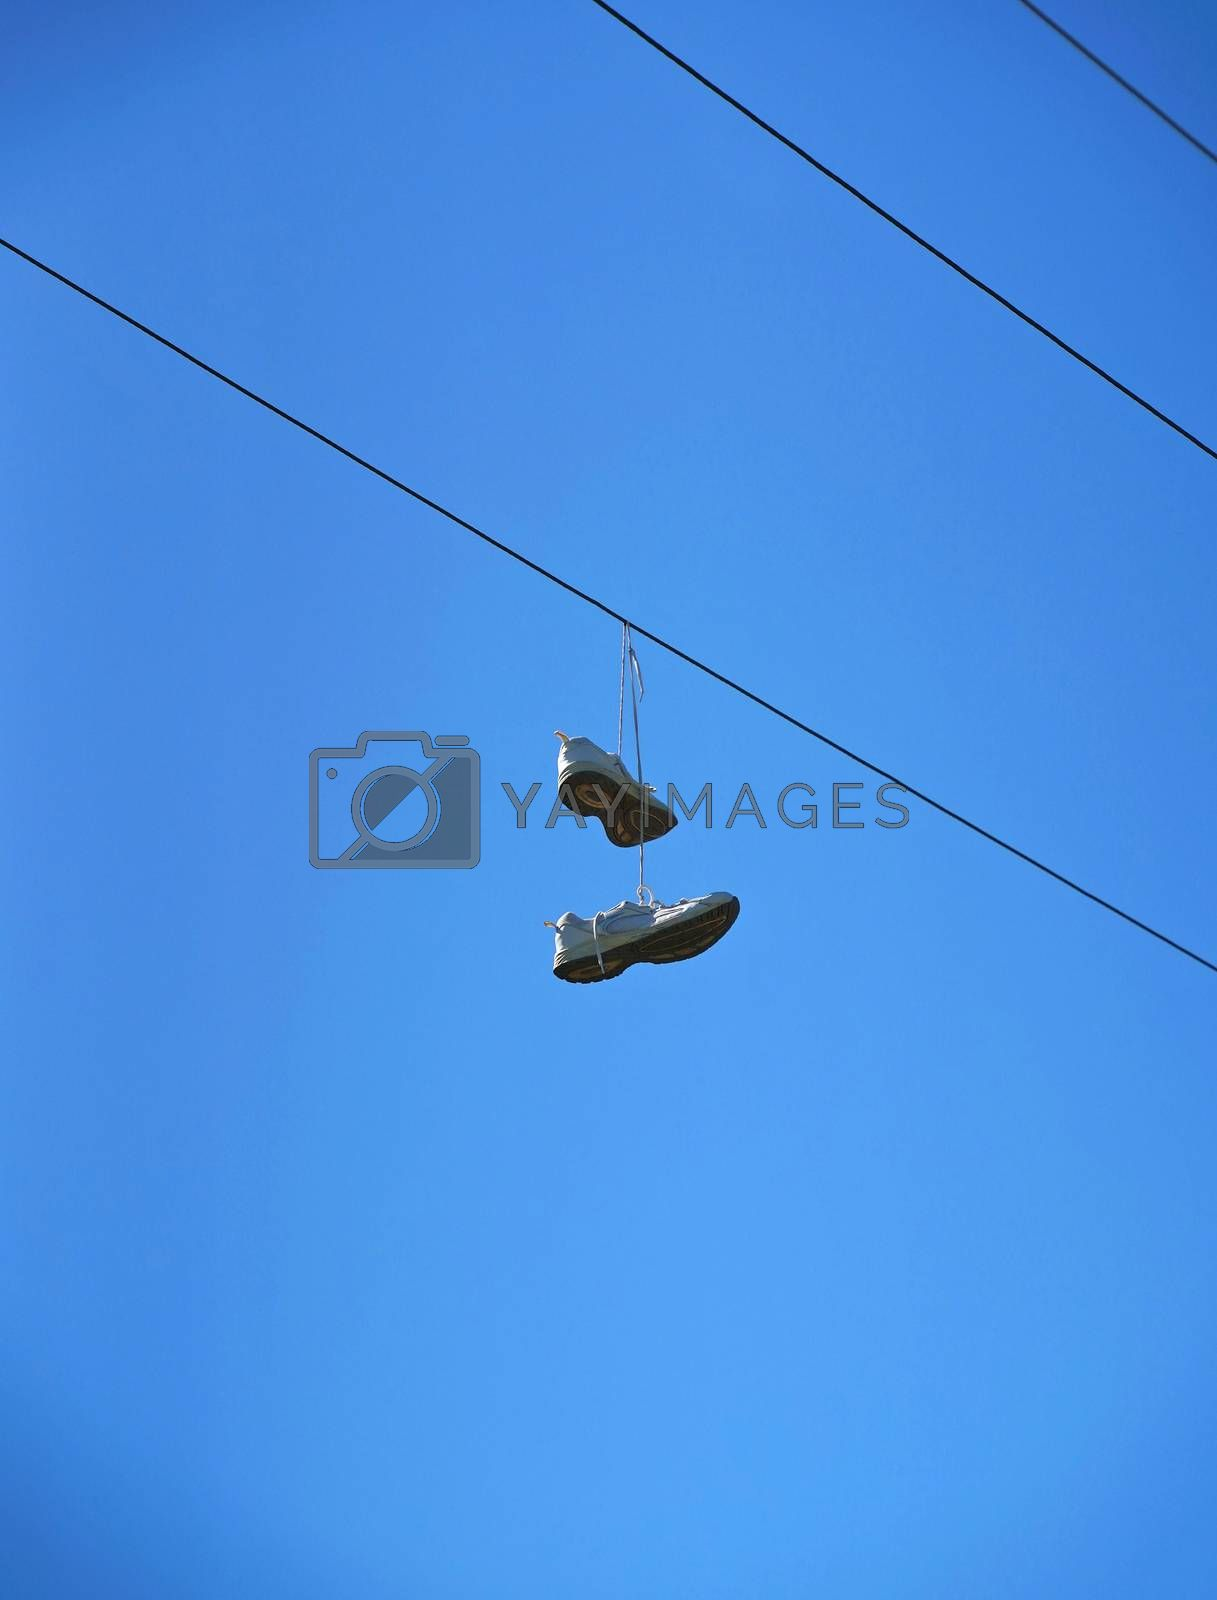 Royalty free image of Old sneaker shoes hanging on an electric cable against blue sky by nuchylee